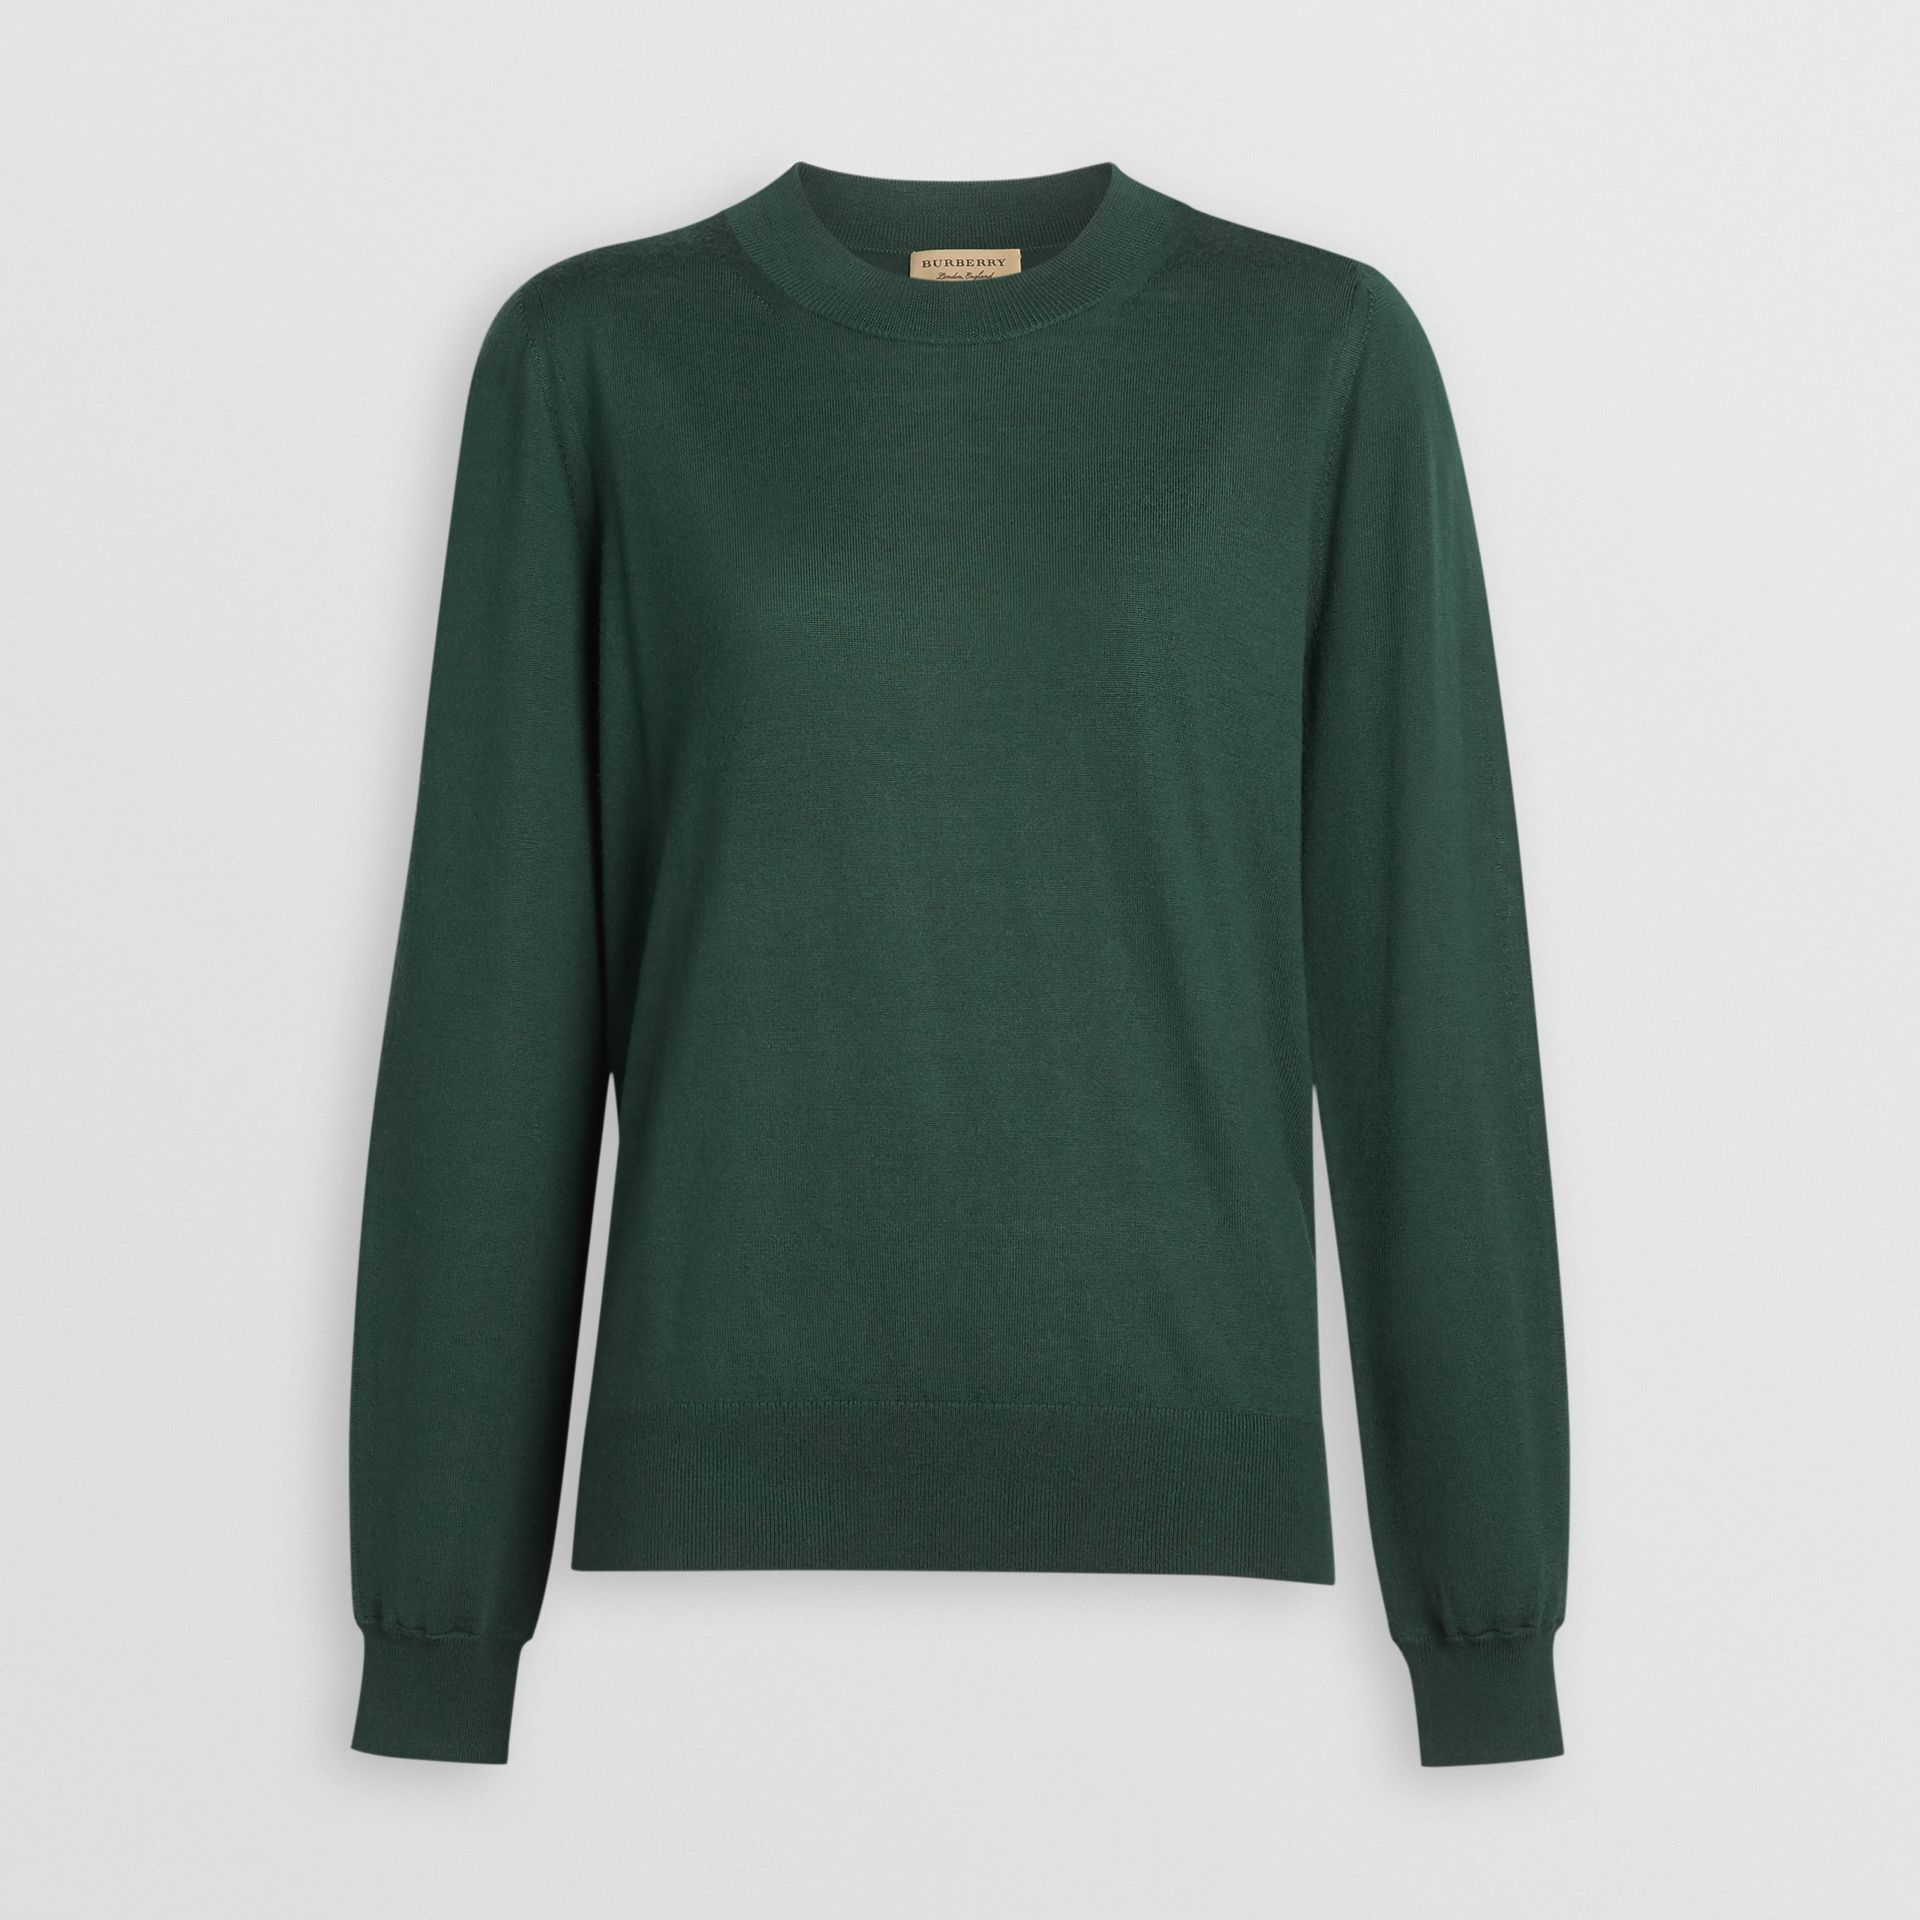 Merino Wool Crew Neck Sweater in Dark Forest Green - Women | Burberry Australia - gallery image 3